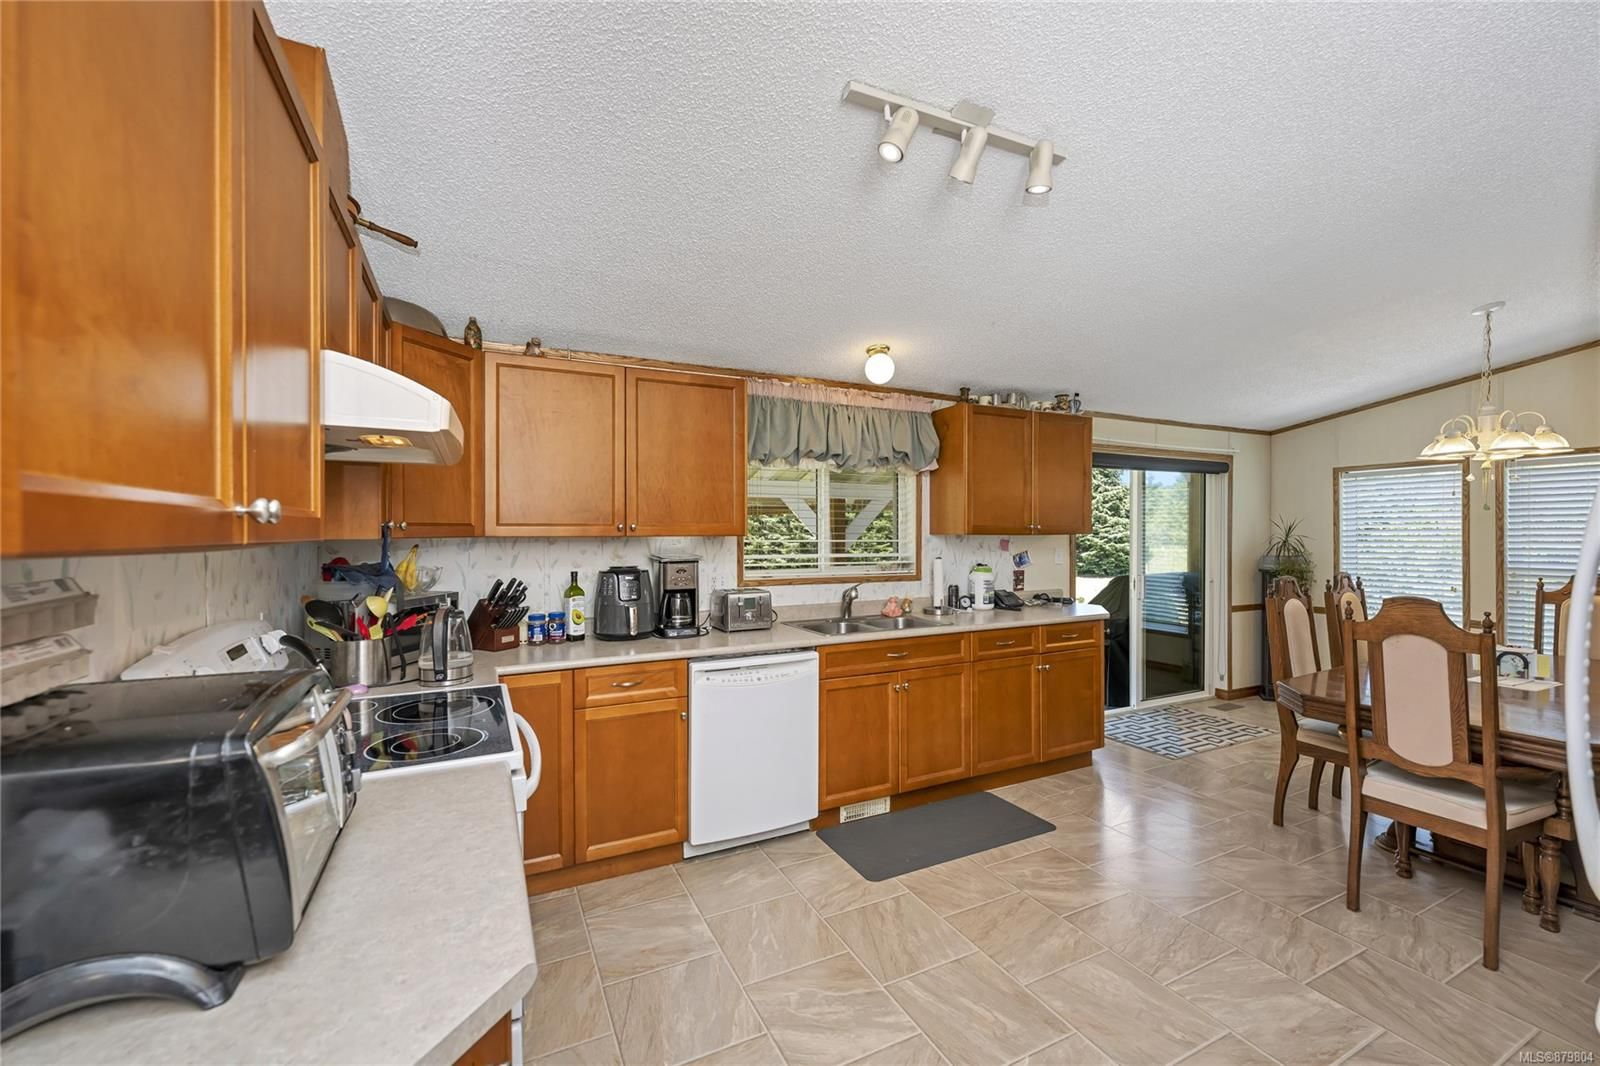 Photo 16: Photos: 3596 Riverside Rd in : ML Cobble Hill Manufactured Home for sale (Malahat & Area)  : MLS®# 879804